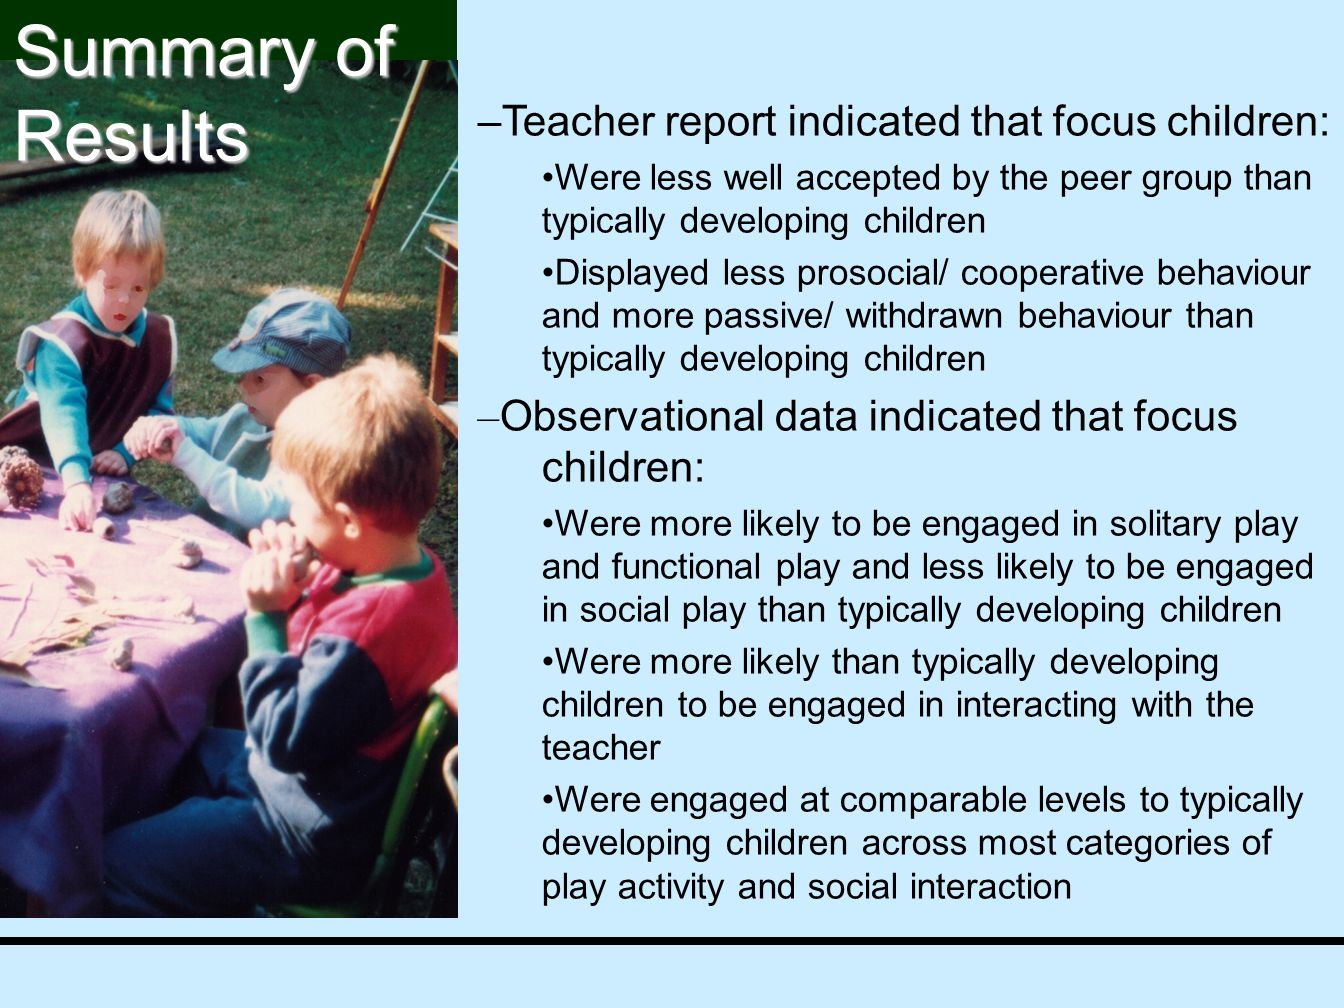 –Teacher report indicated that focus children: Were less well accepted by the peer group than typically developing children Displayed less prosocial/ cooperative behaviour and more passive/ withdrawn behaviour than typically developing children – Observational data indicated that focus children: Were more likely to be engaged in solitary play and functional play and less likely to be engaged in social play than typically developing children Were more likely than typically developing children to be engaged in interacting with the teacher Were engaged at comparable levels to typically developing children across most categories of play activity and social interaction Summary of Results